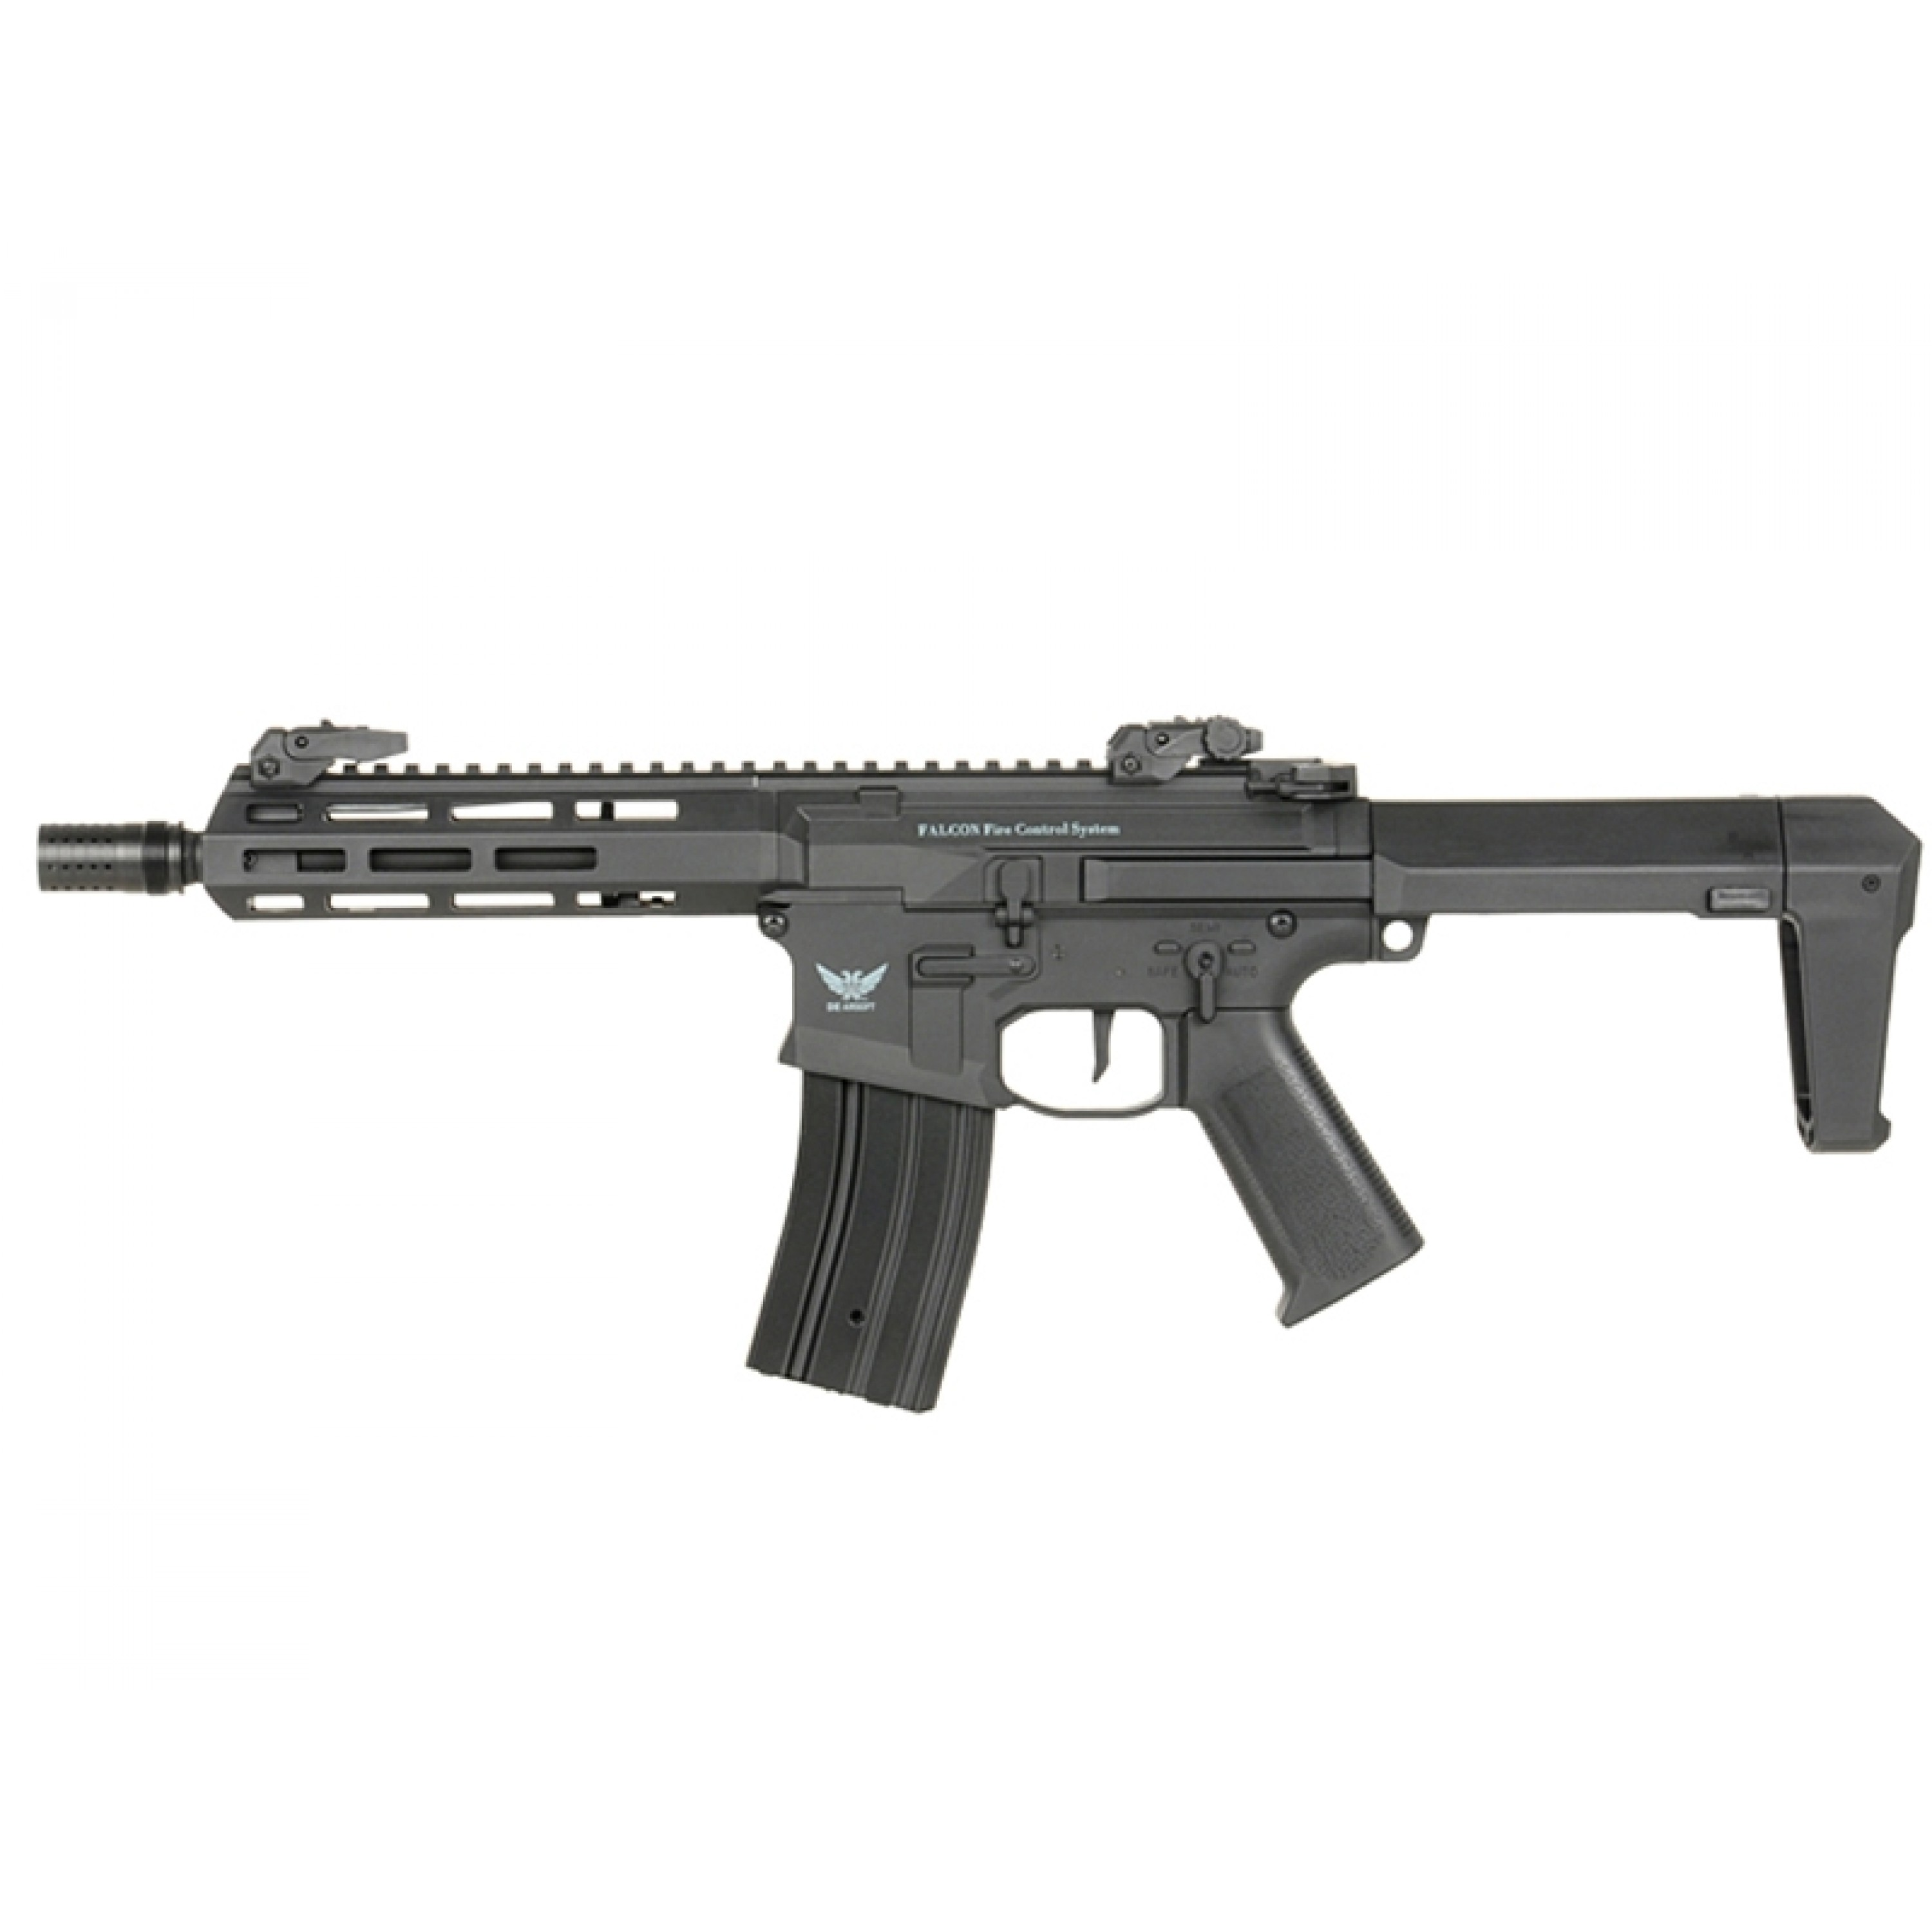 Double Eagle M904 AR15/M4 with Falcon Fire Control System Black - M904G)